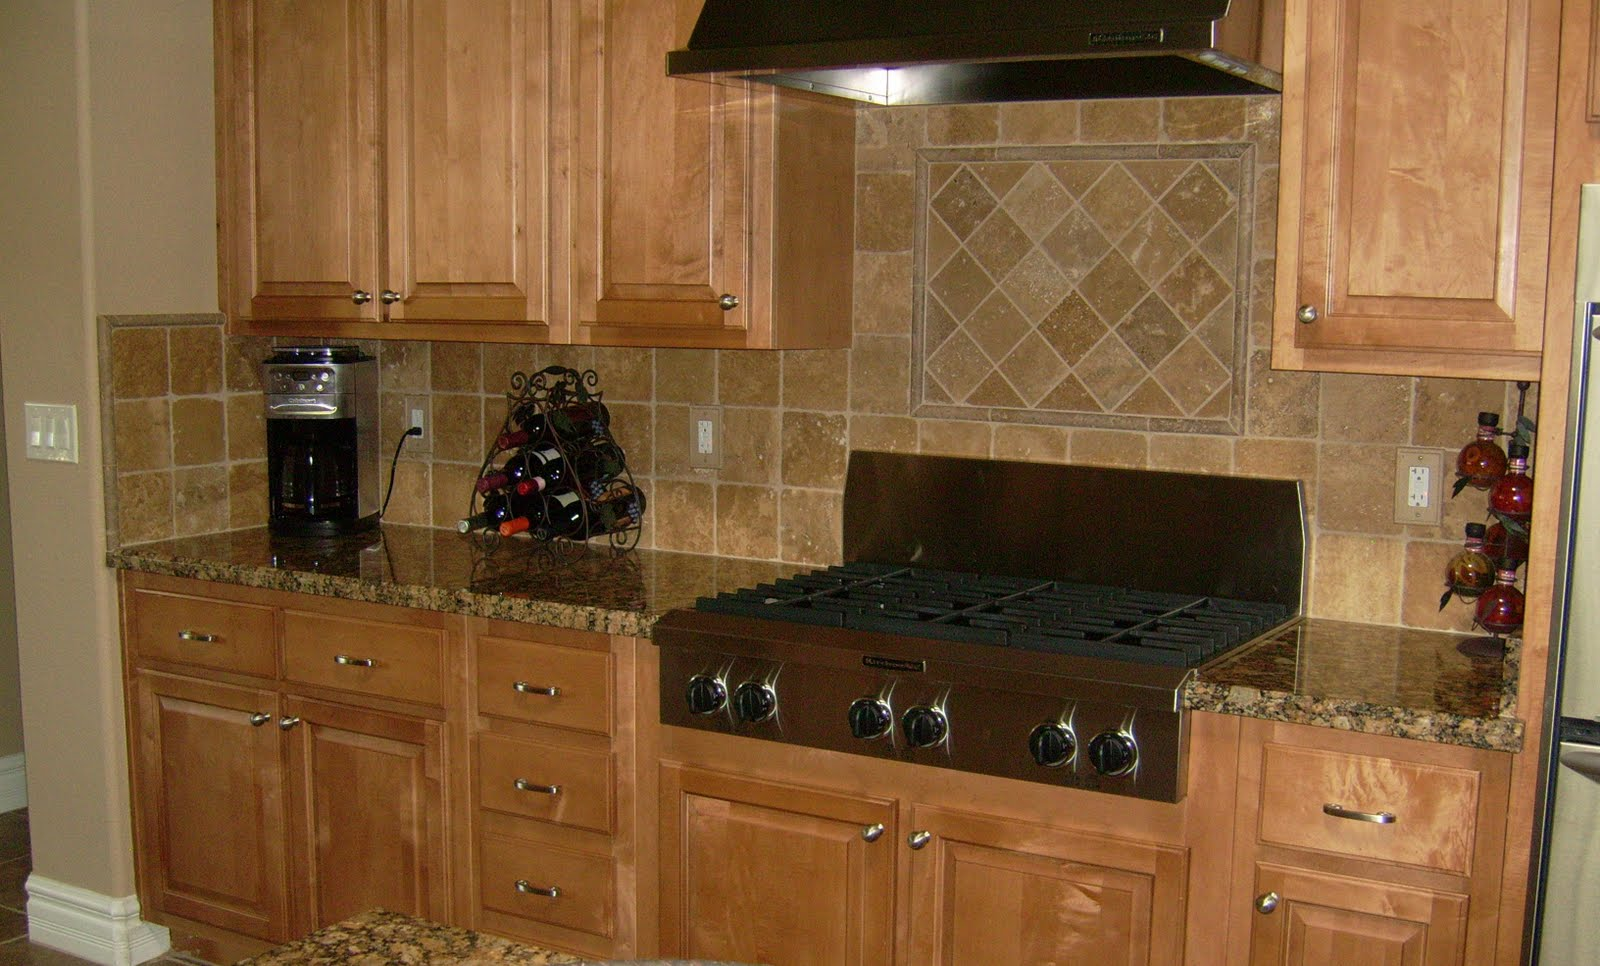 Pictures kitchen backsplash ideas Backsplash pictures